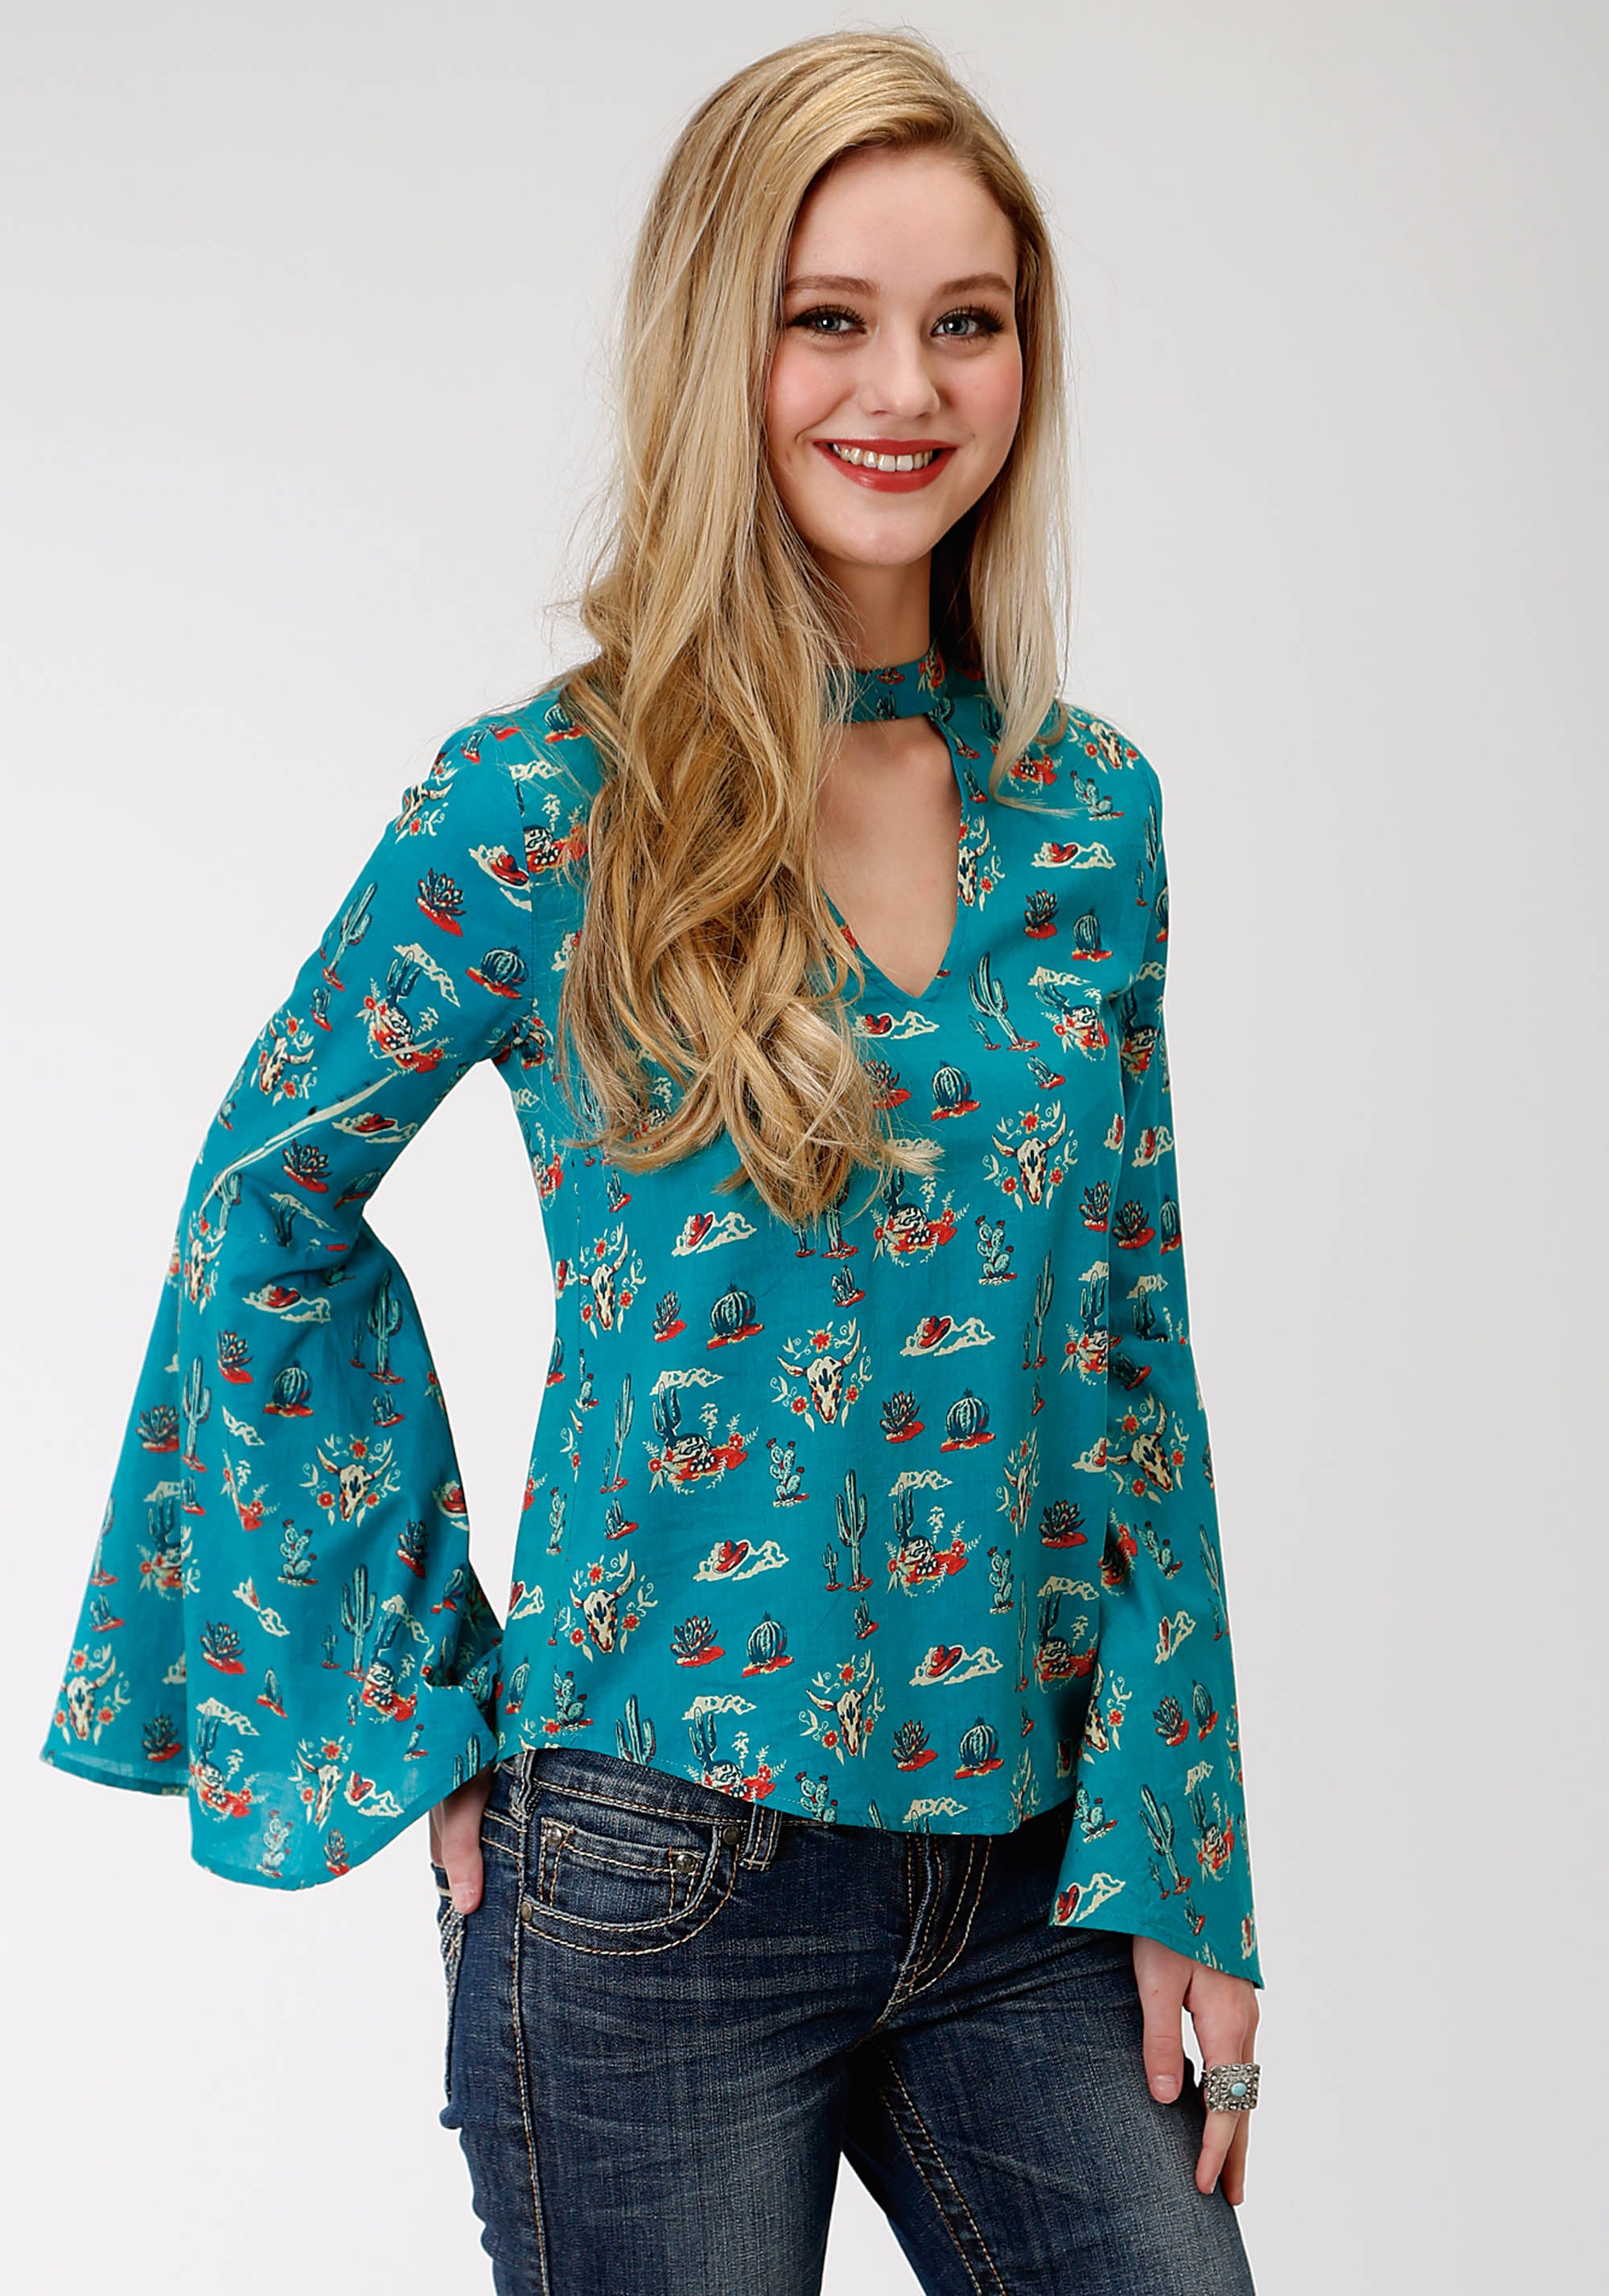 ROPER WOMENS BLUE 9870 CACTUS SCENE LS BLOUSE FIVE STAR COLLECTION- FALL I LONG SLEEVE